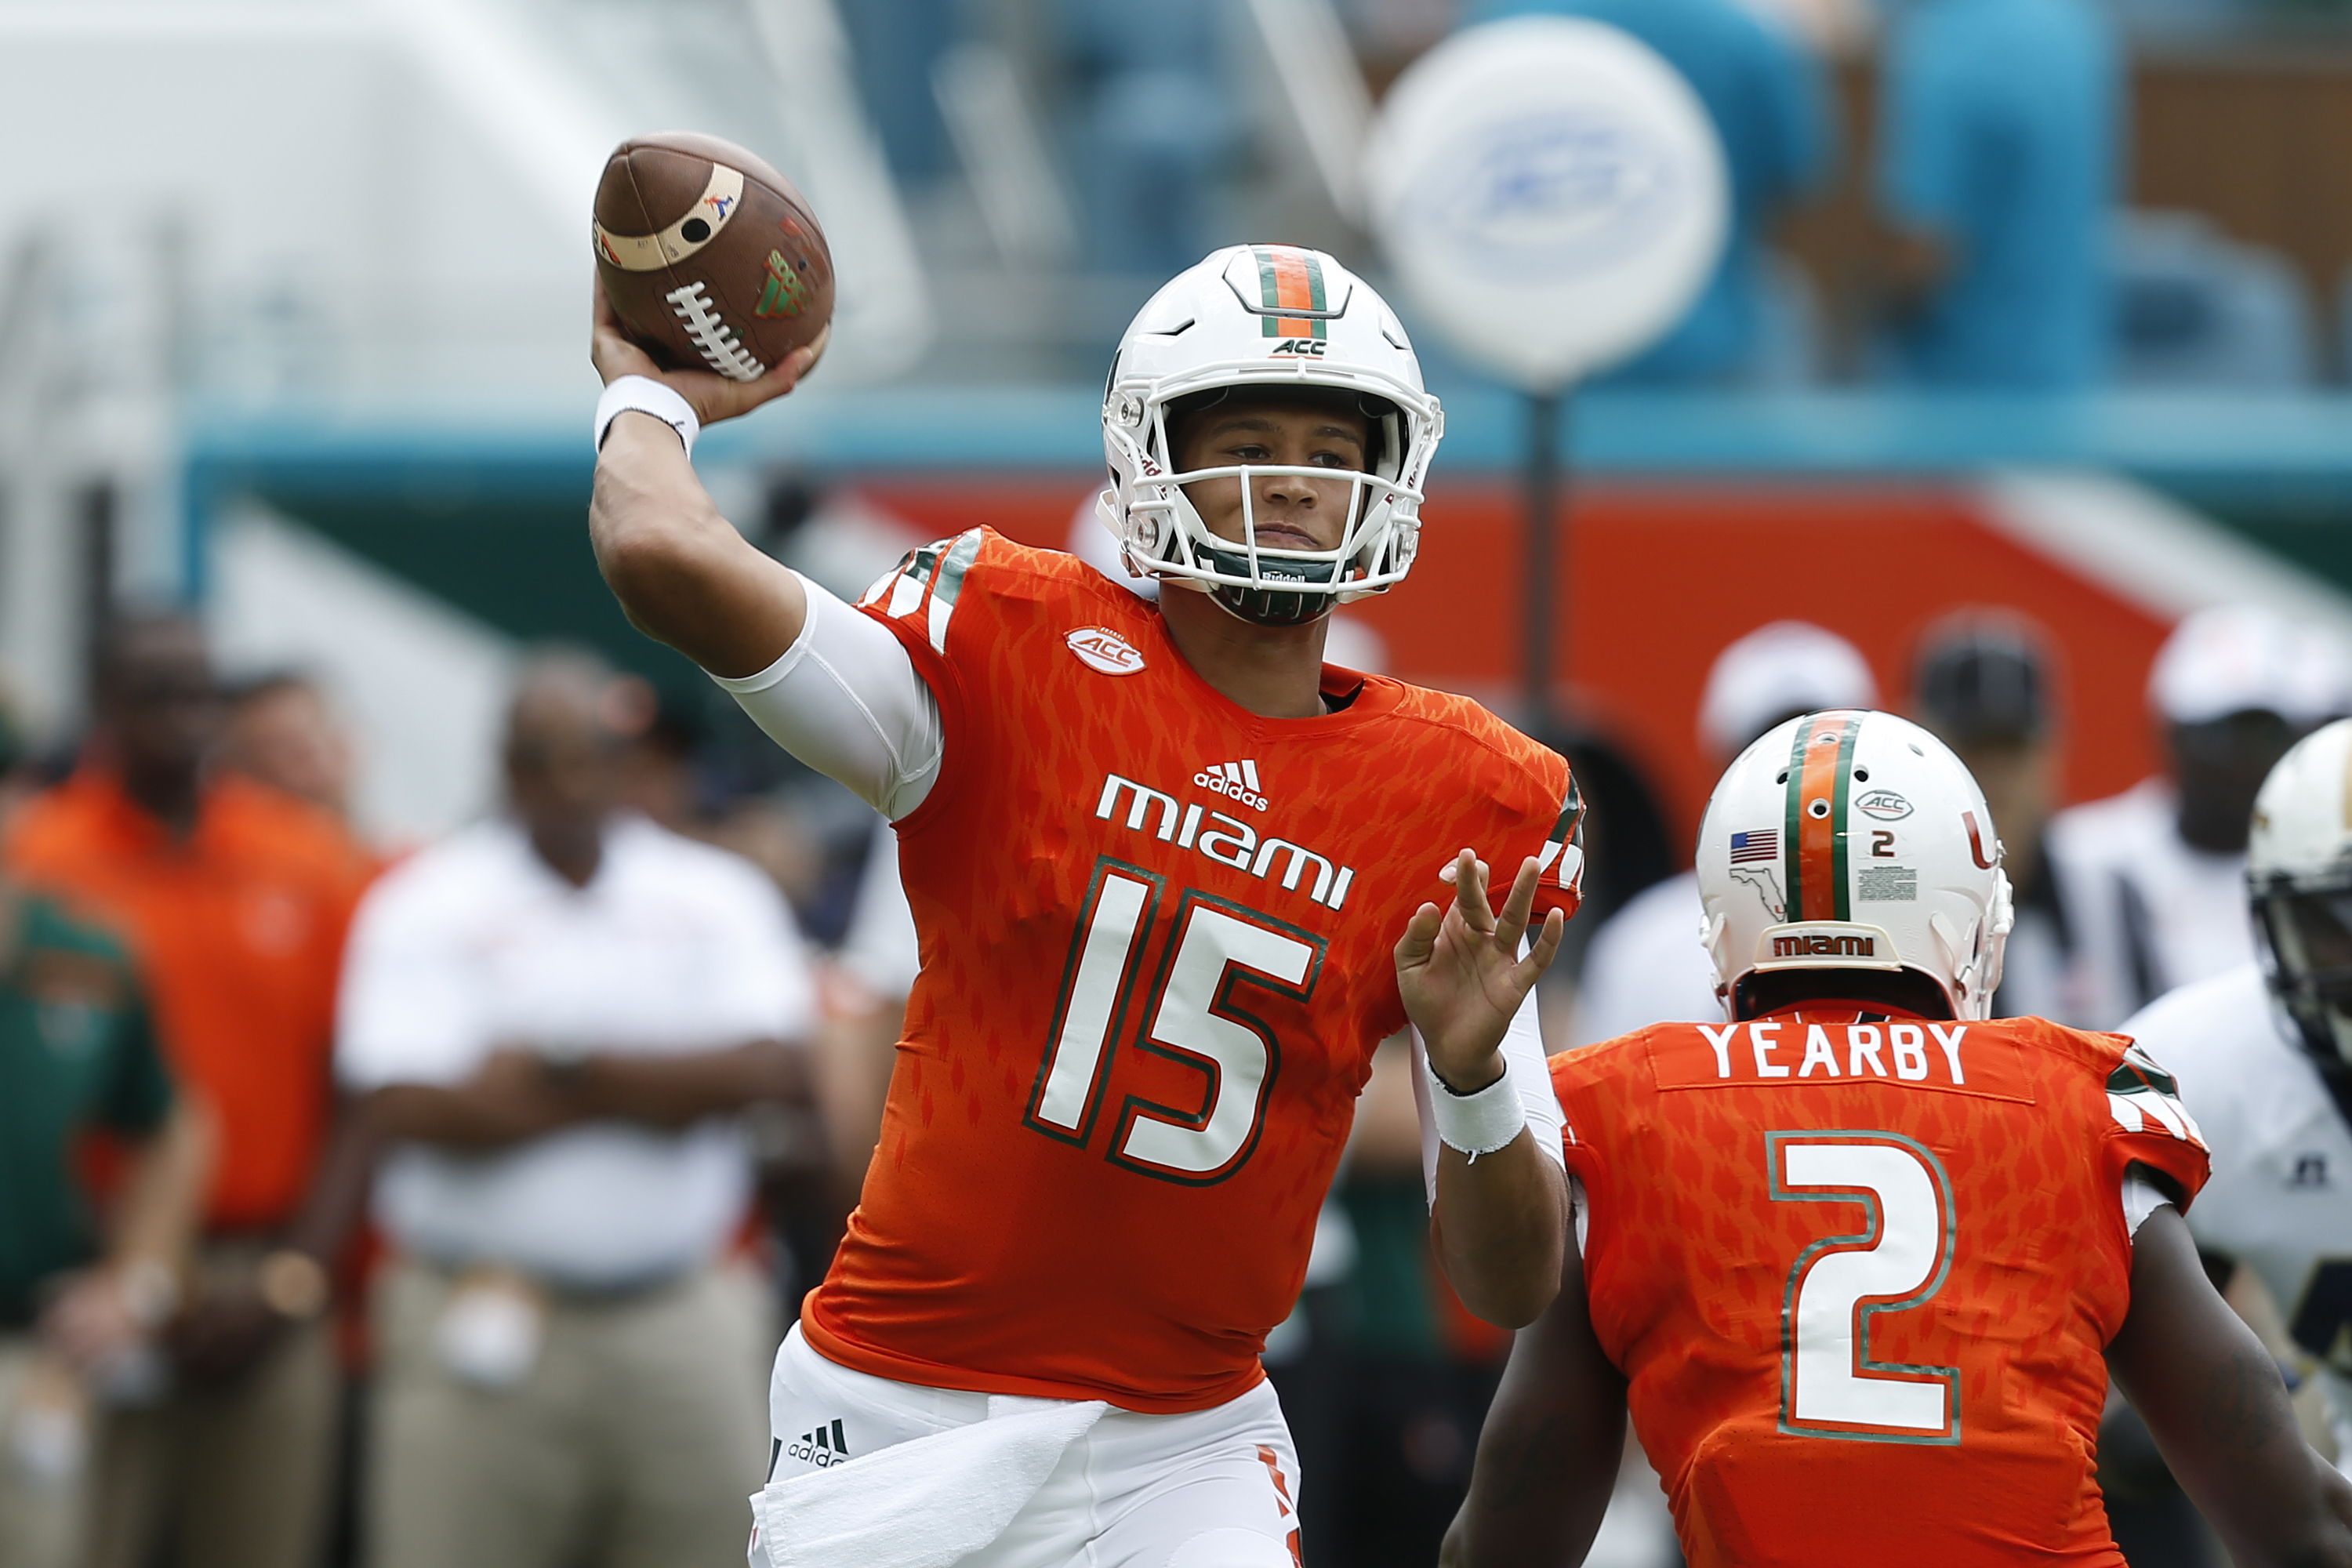 Brad Kaaya is a talented passer who threw for more than 3,000 yards this season.